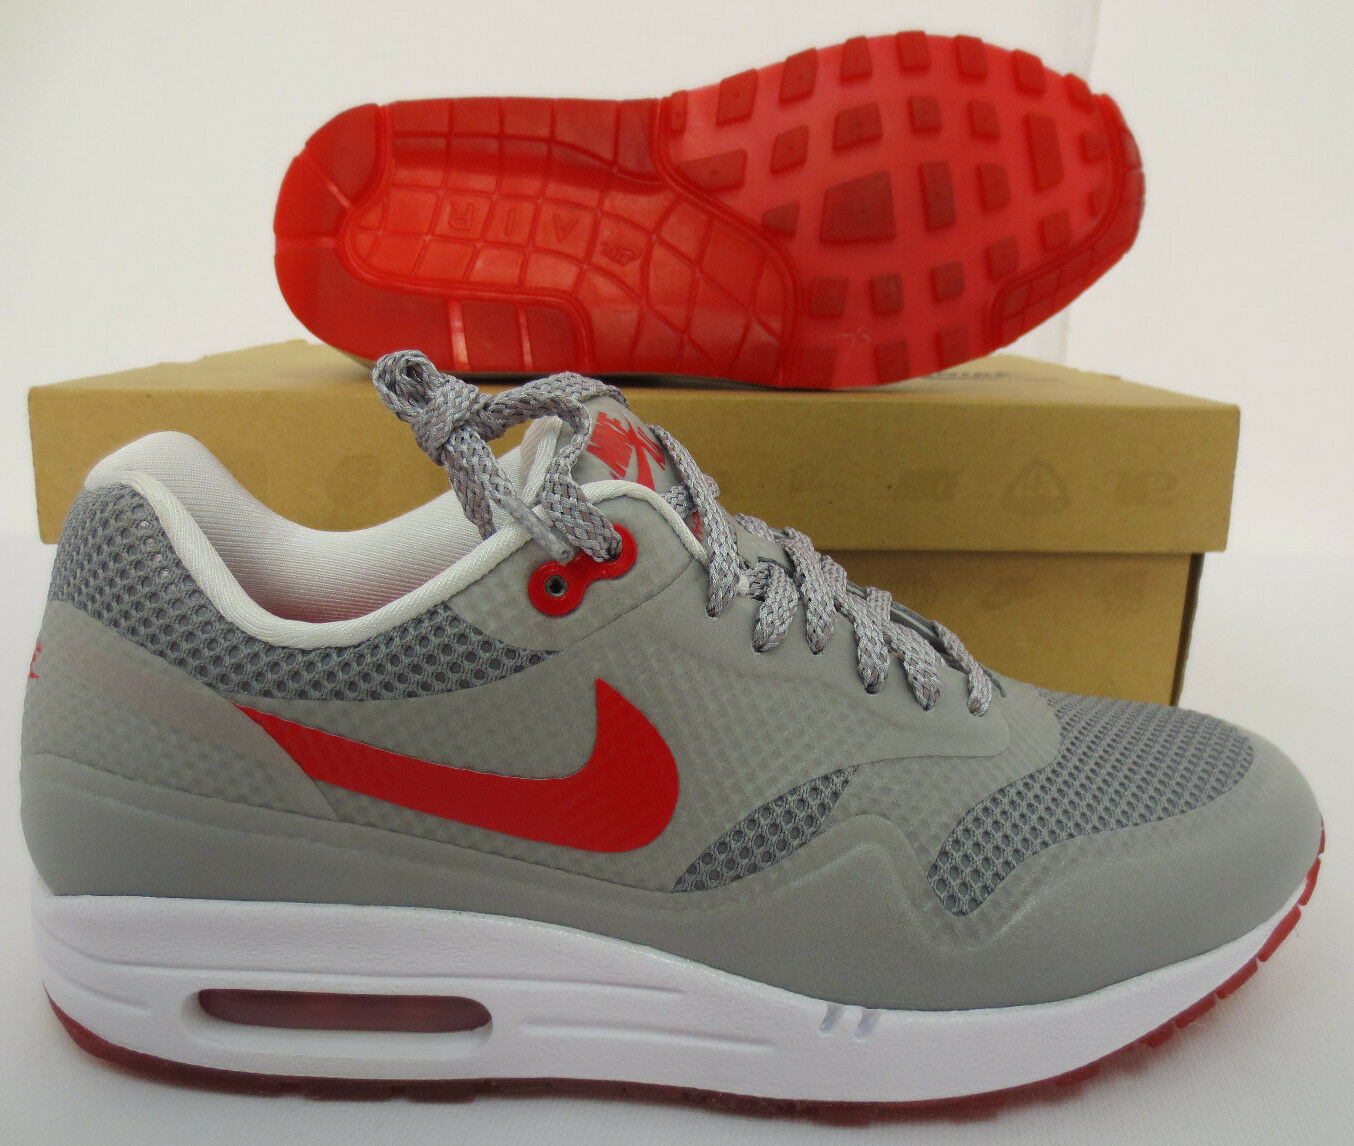 WMNS WOMENS AIR MAX 1 FUSE OUT SIZE 8 RUNNING WORK OUT FUSE SHOES NIKE 580783 001 NEW f77fb4